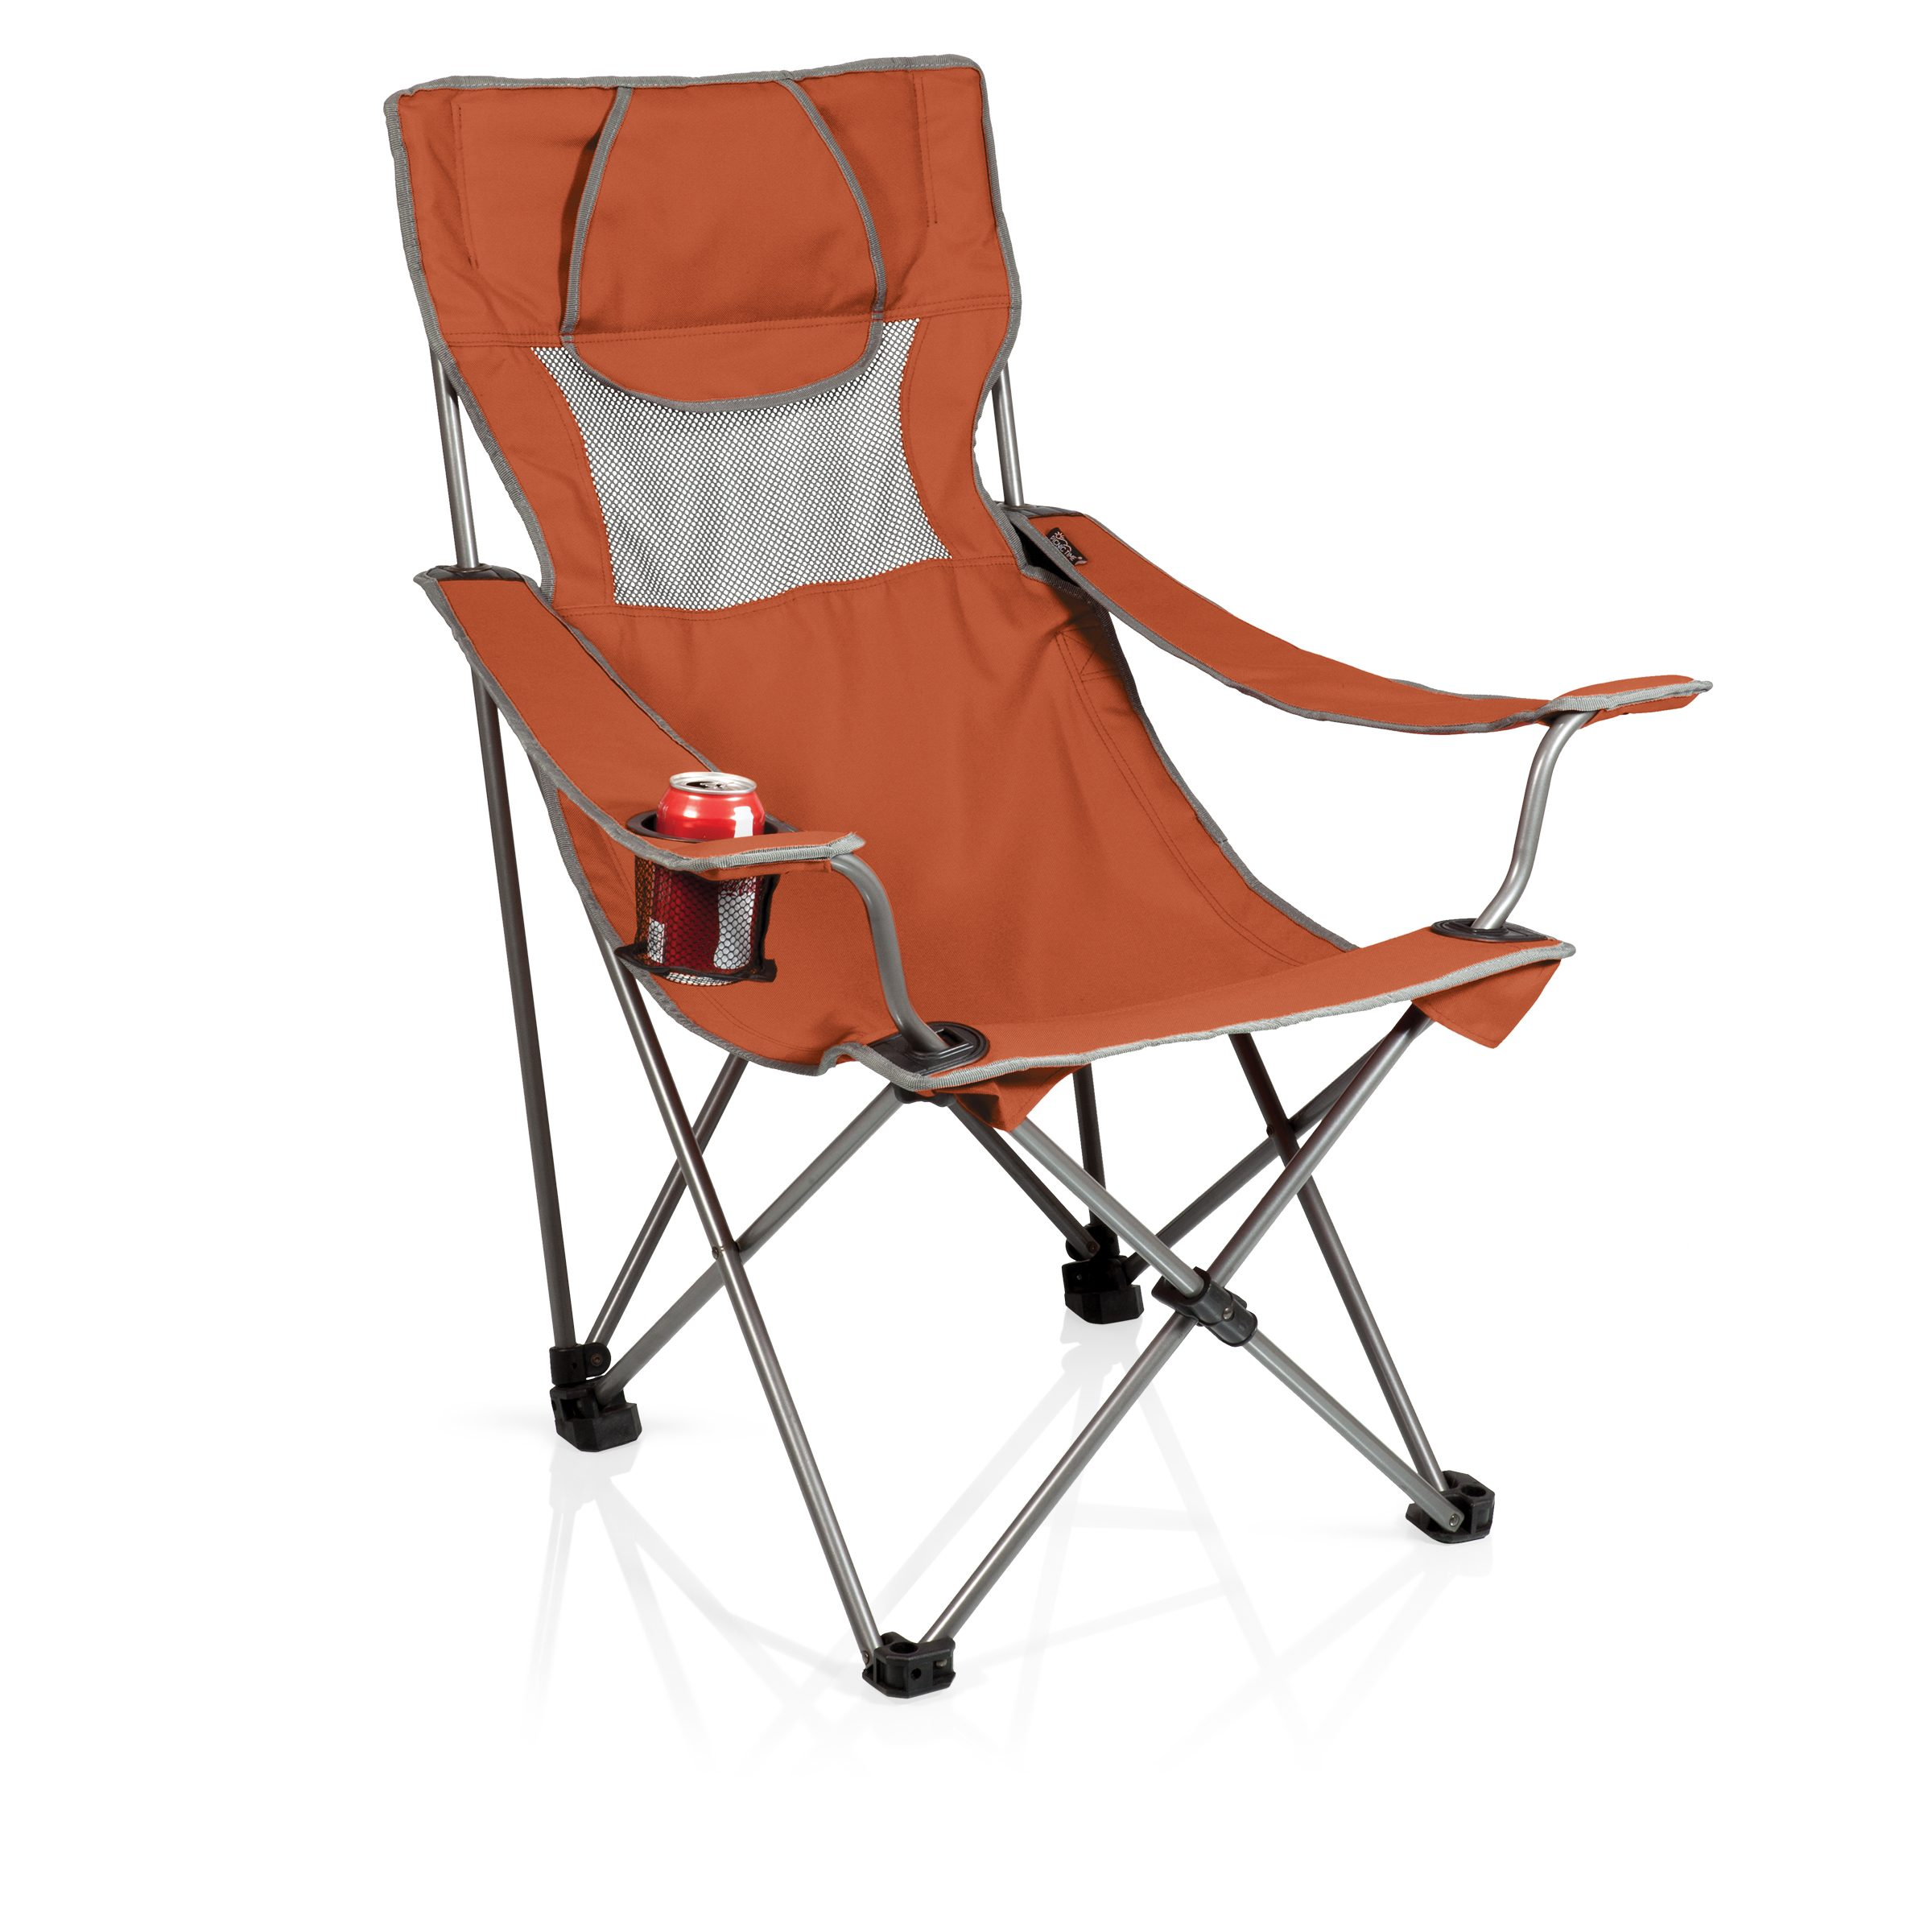 Campsite Chair Burnt Orange/grey